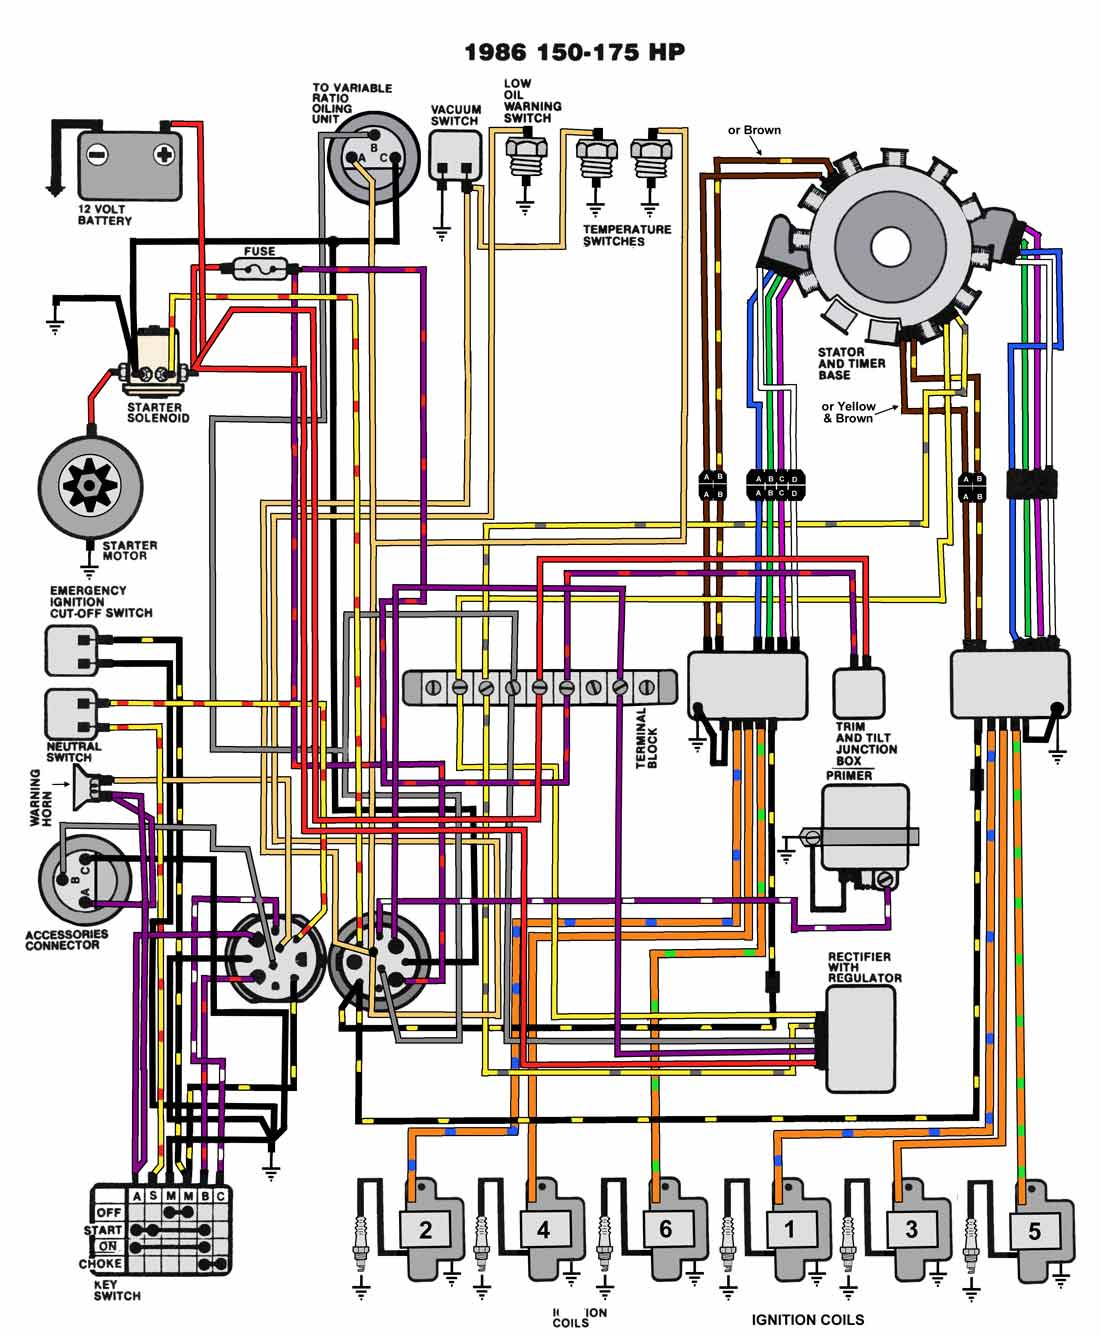 1986_150_175 maxrules wiring diagram wiring color standards \u2022 wiring diagrams yamaha key switch wiring diagram at bayanpartner.co